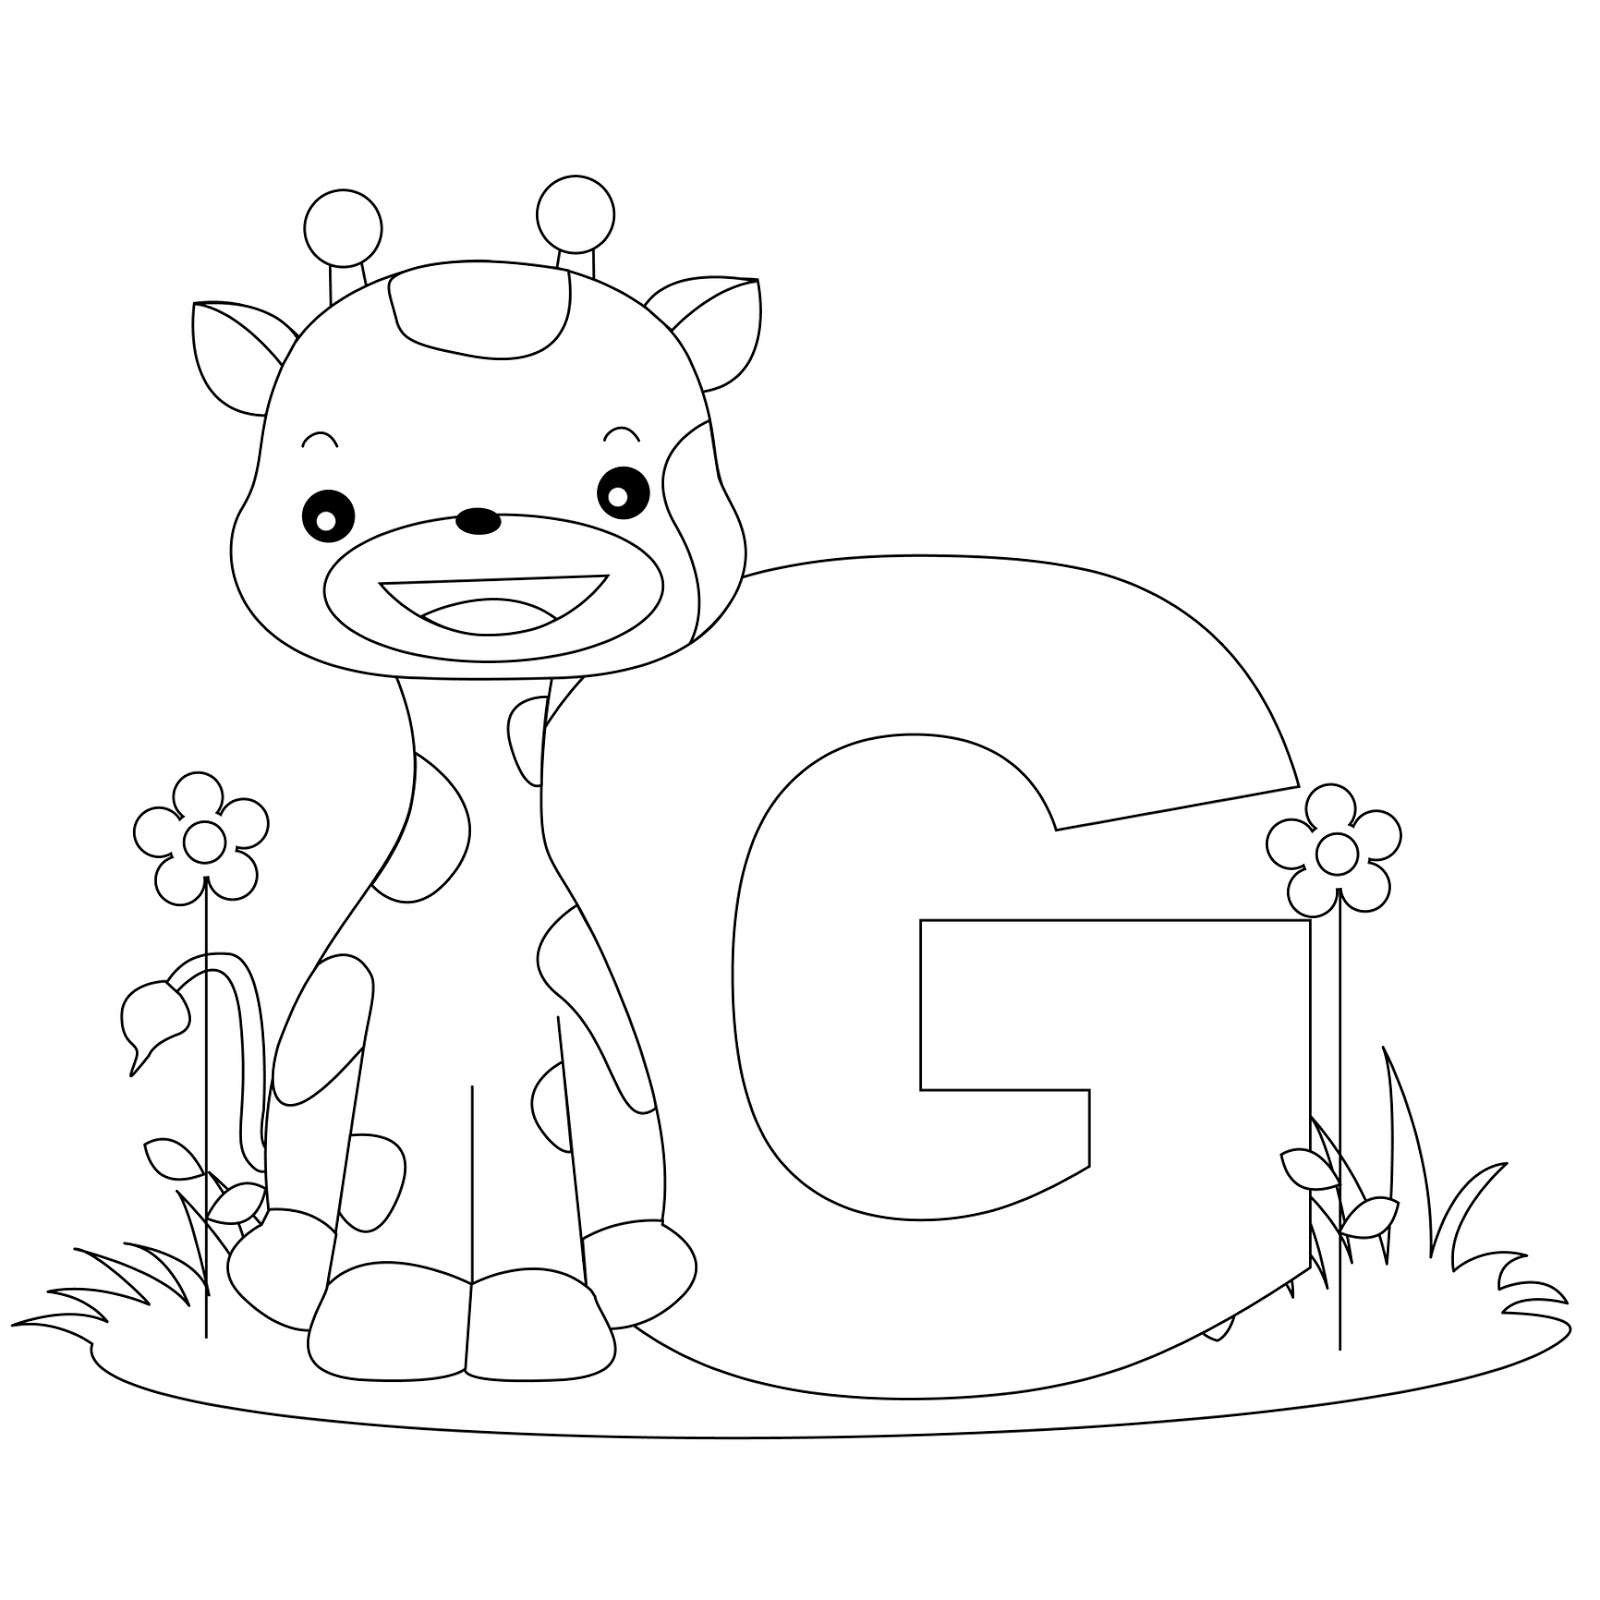 g coloring pages - photo #44